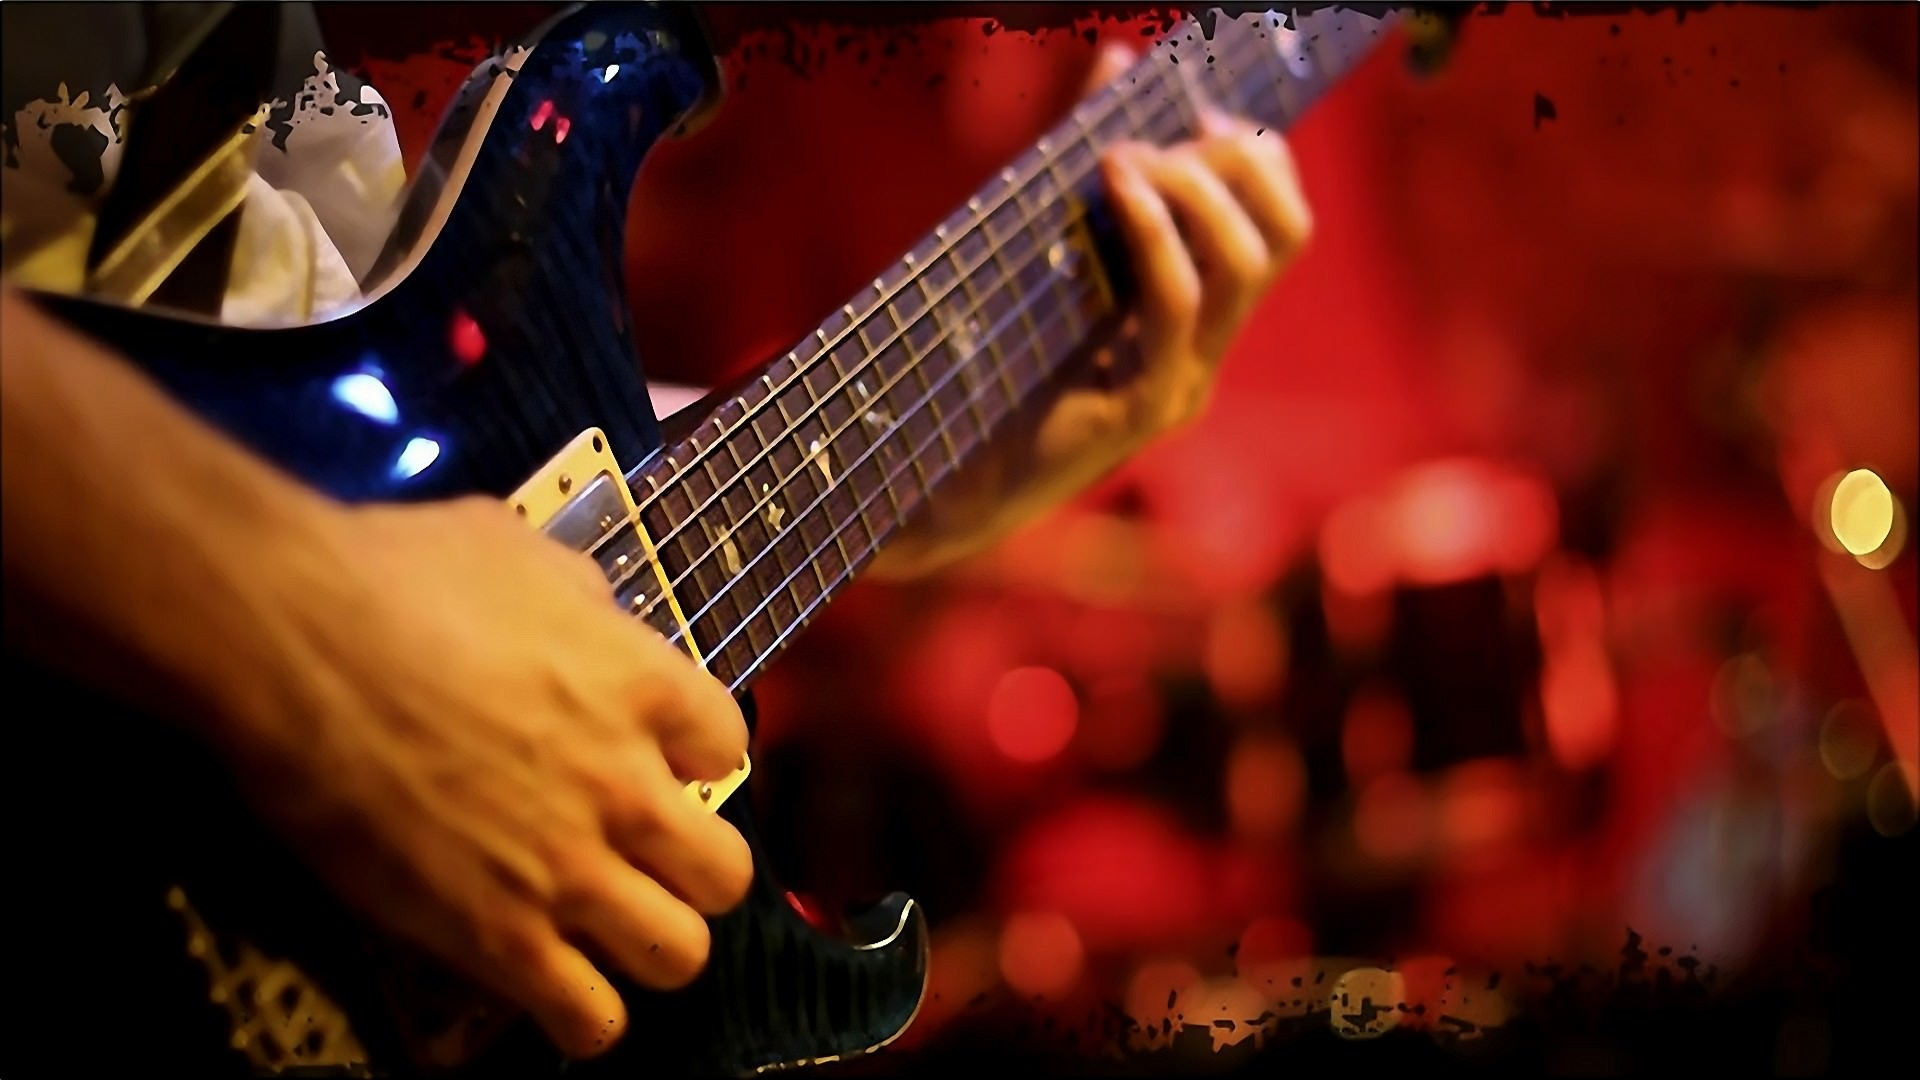 Playing Guitar Music Wallpaper